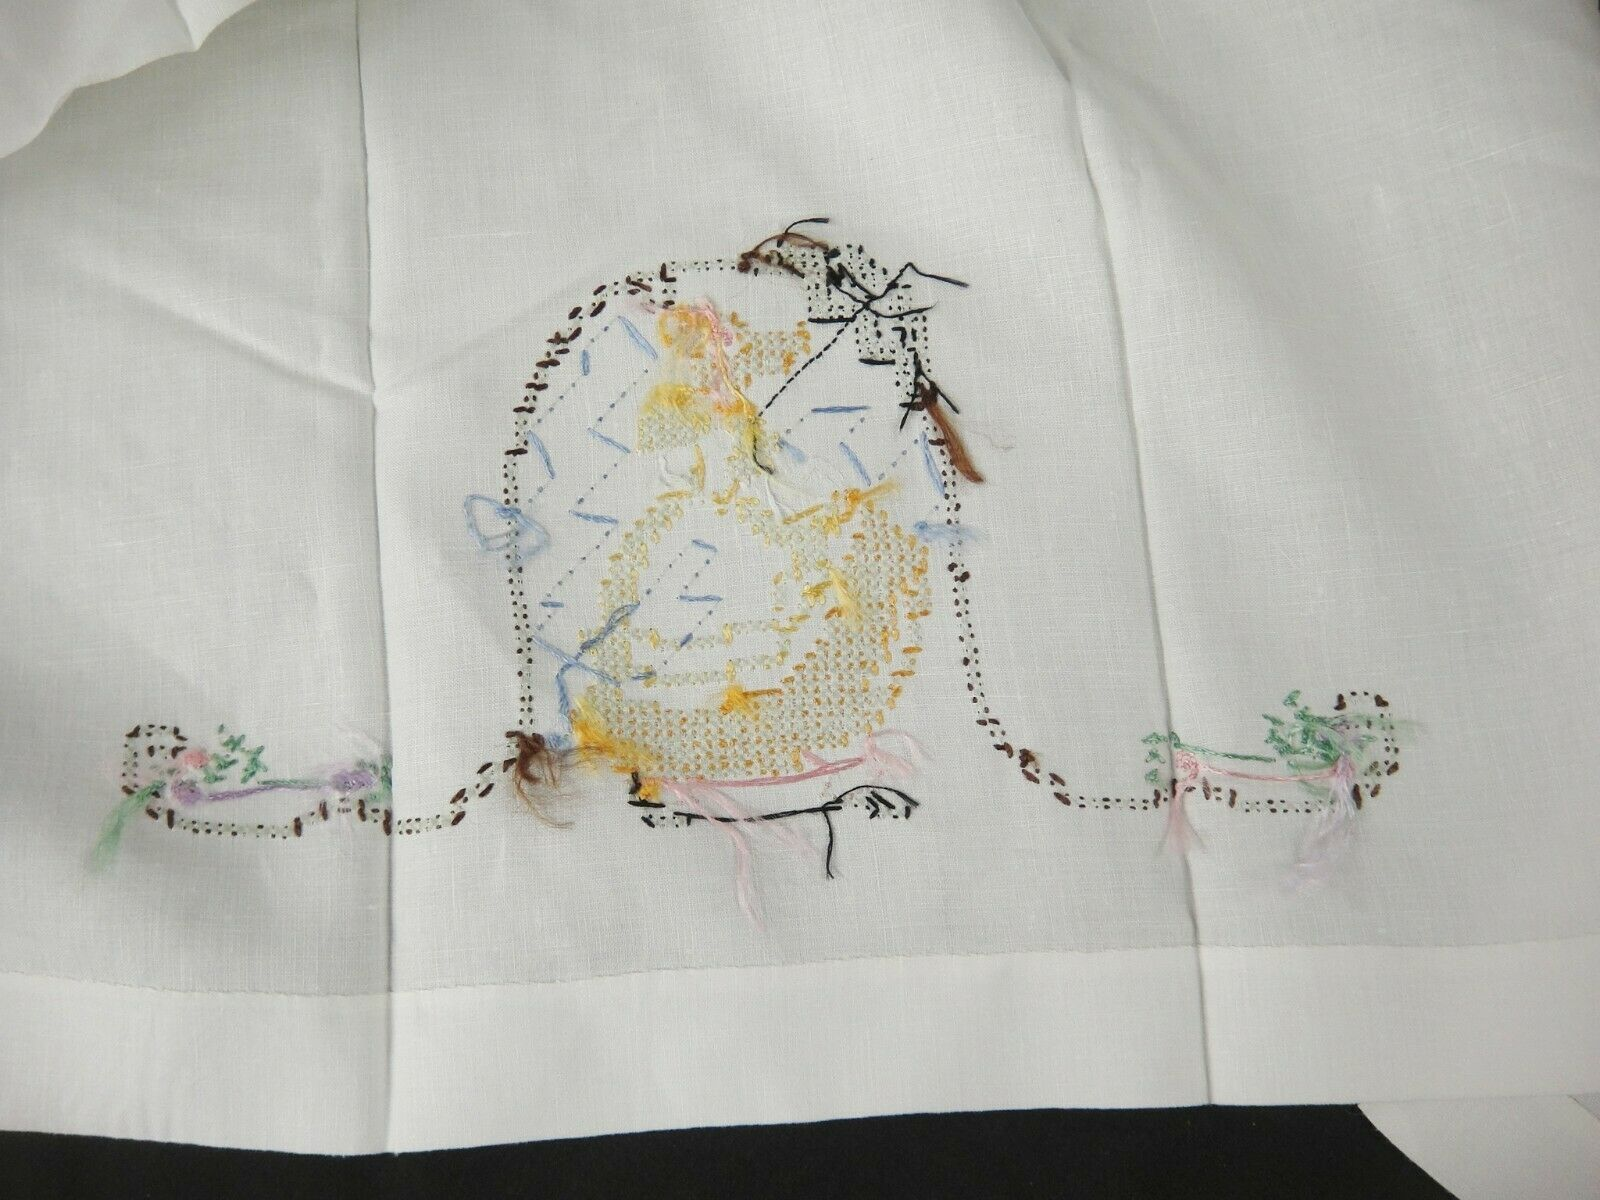 Vintage Hand Embroidered Tea Towels April Showers May Flowers Girl in Garden image 5